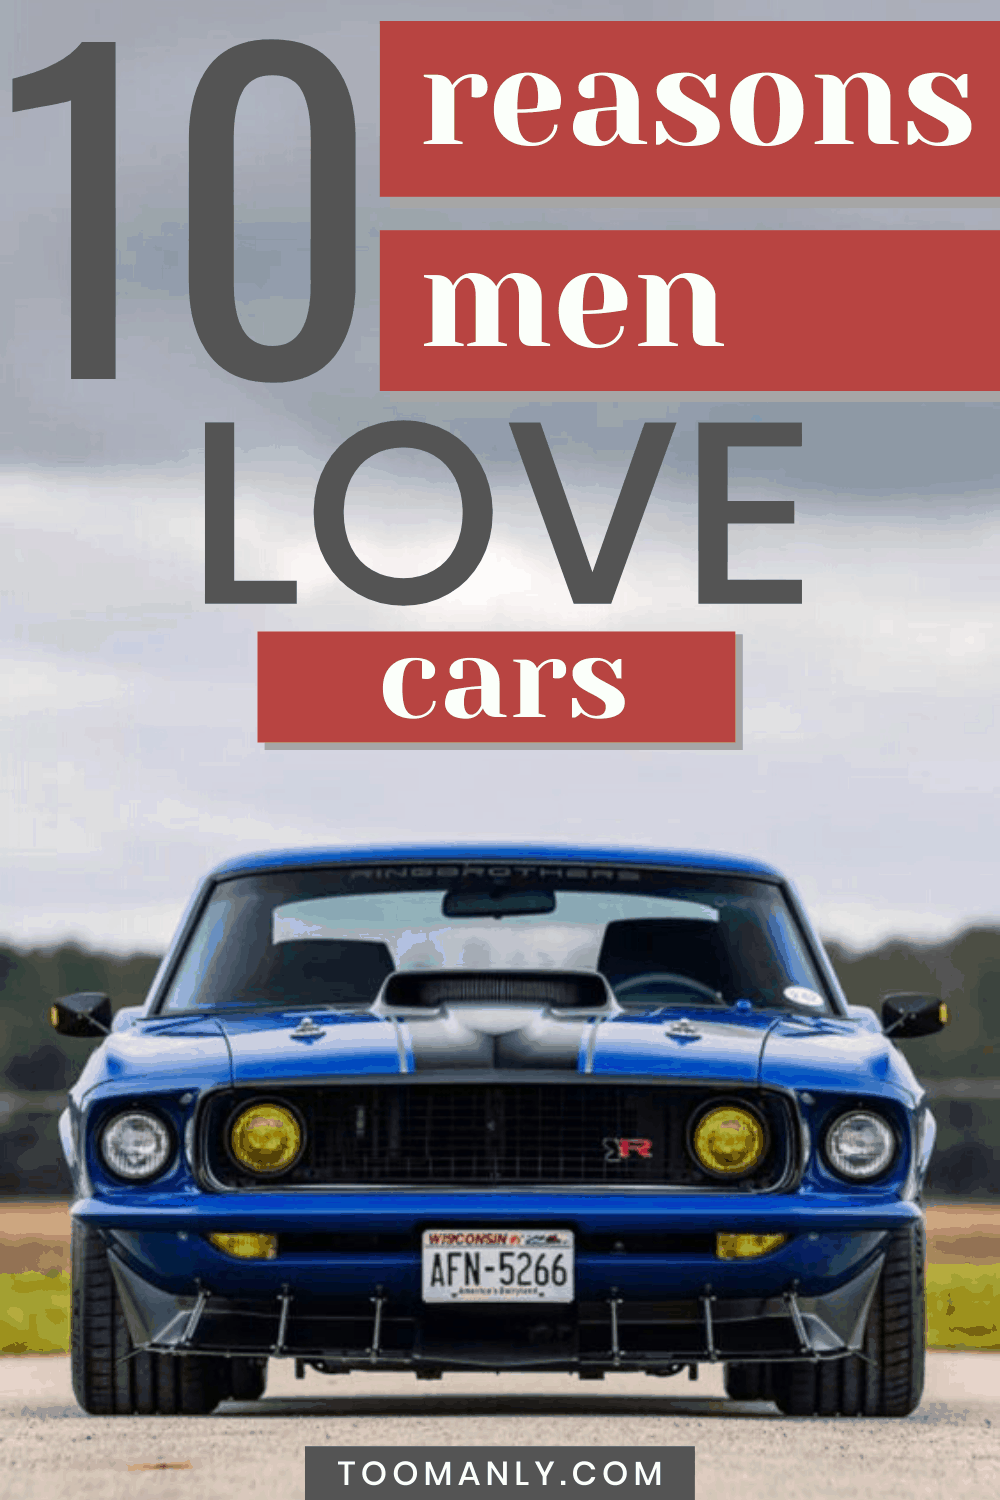 Cool Cars For Guys - Classic Muscle Car